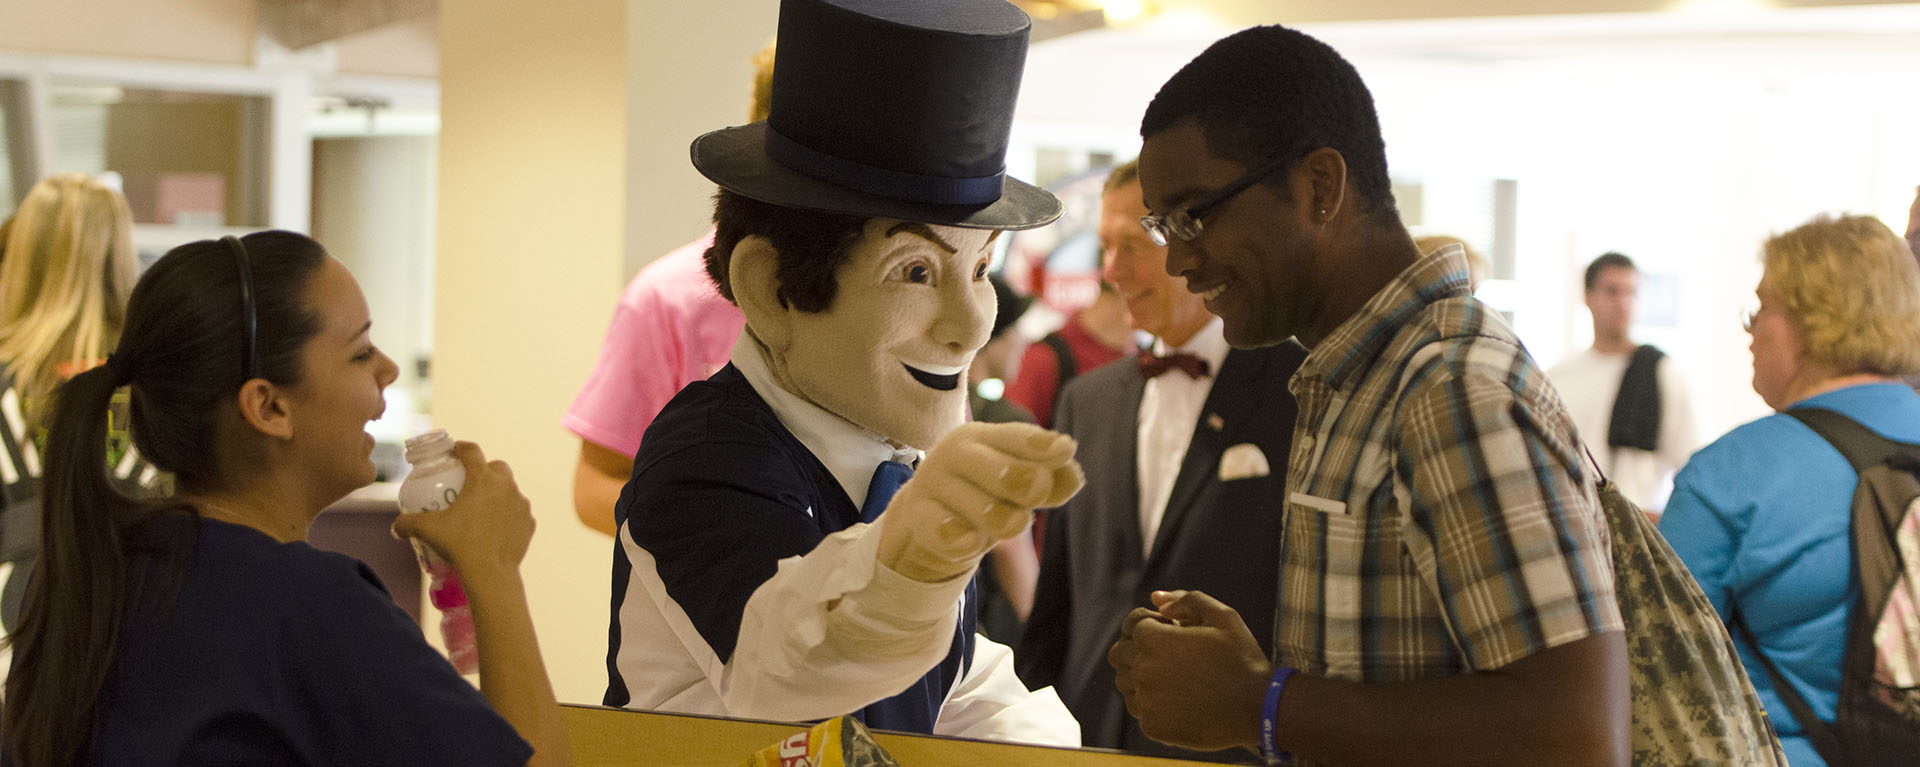 Ichabod mascot with students inside the Union